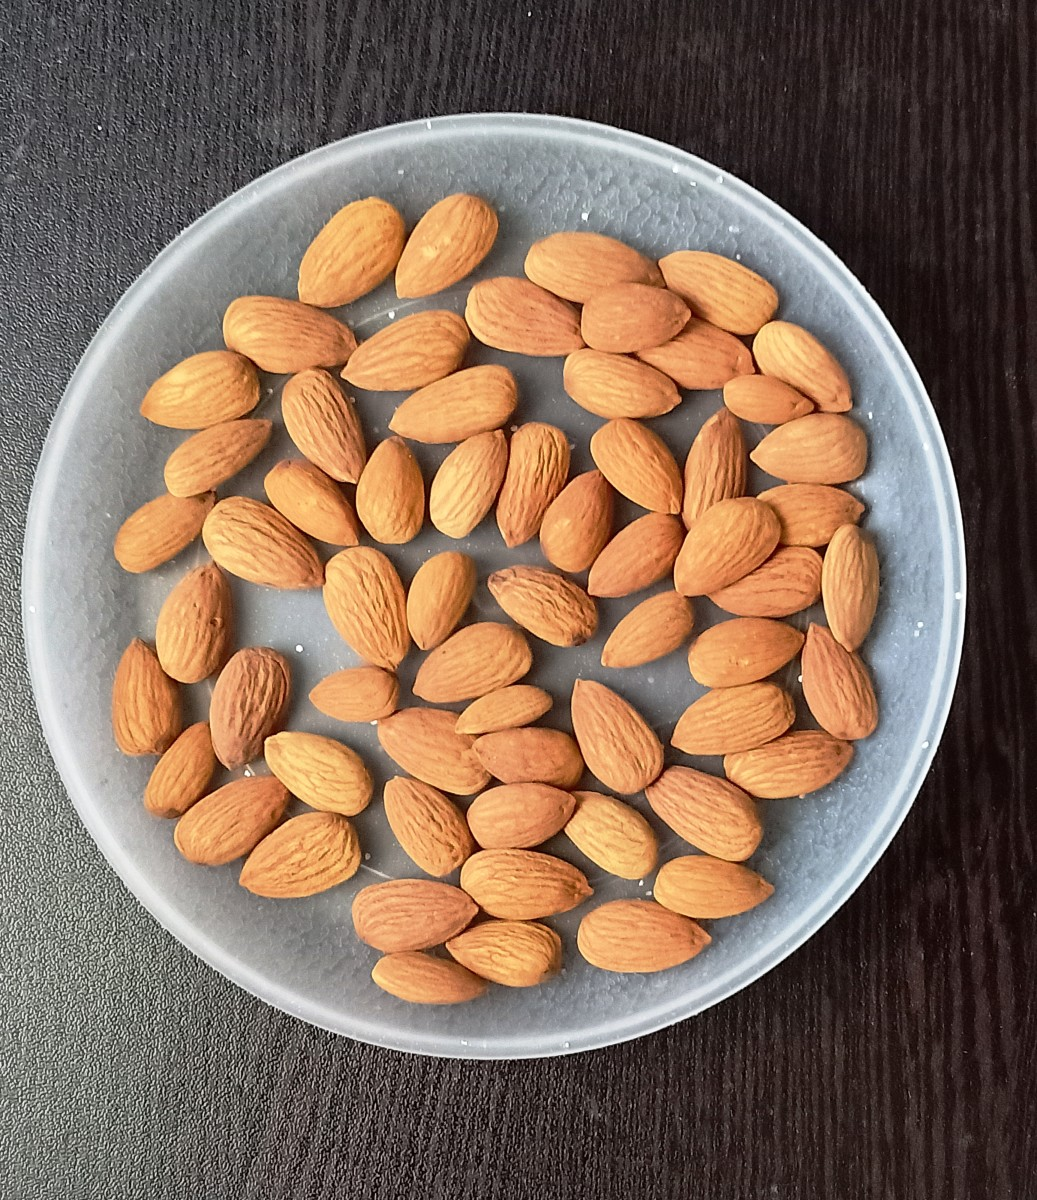 Almond Nutrition & Health Benefits